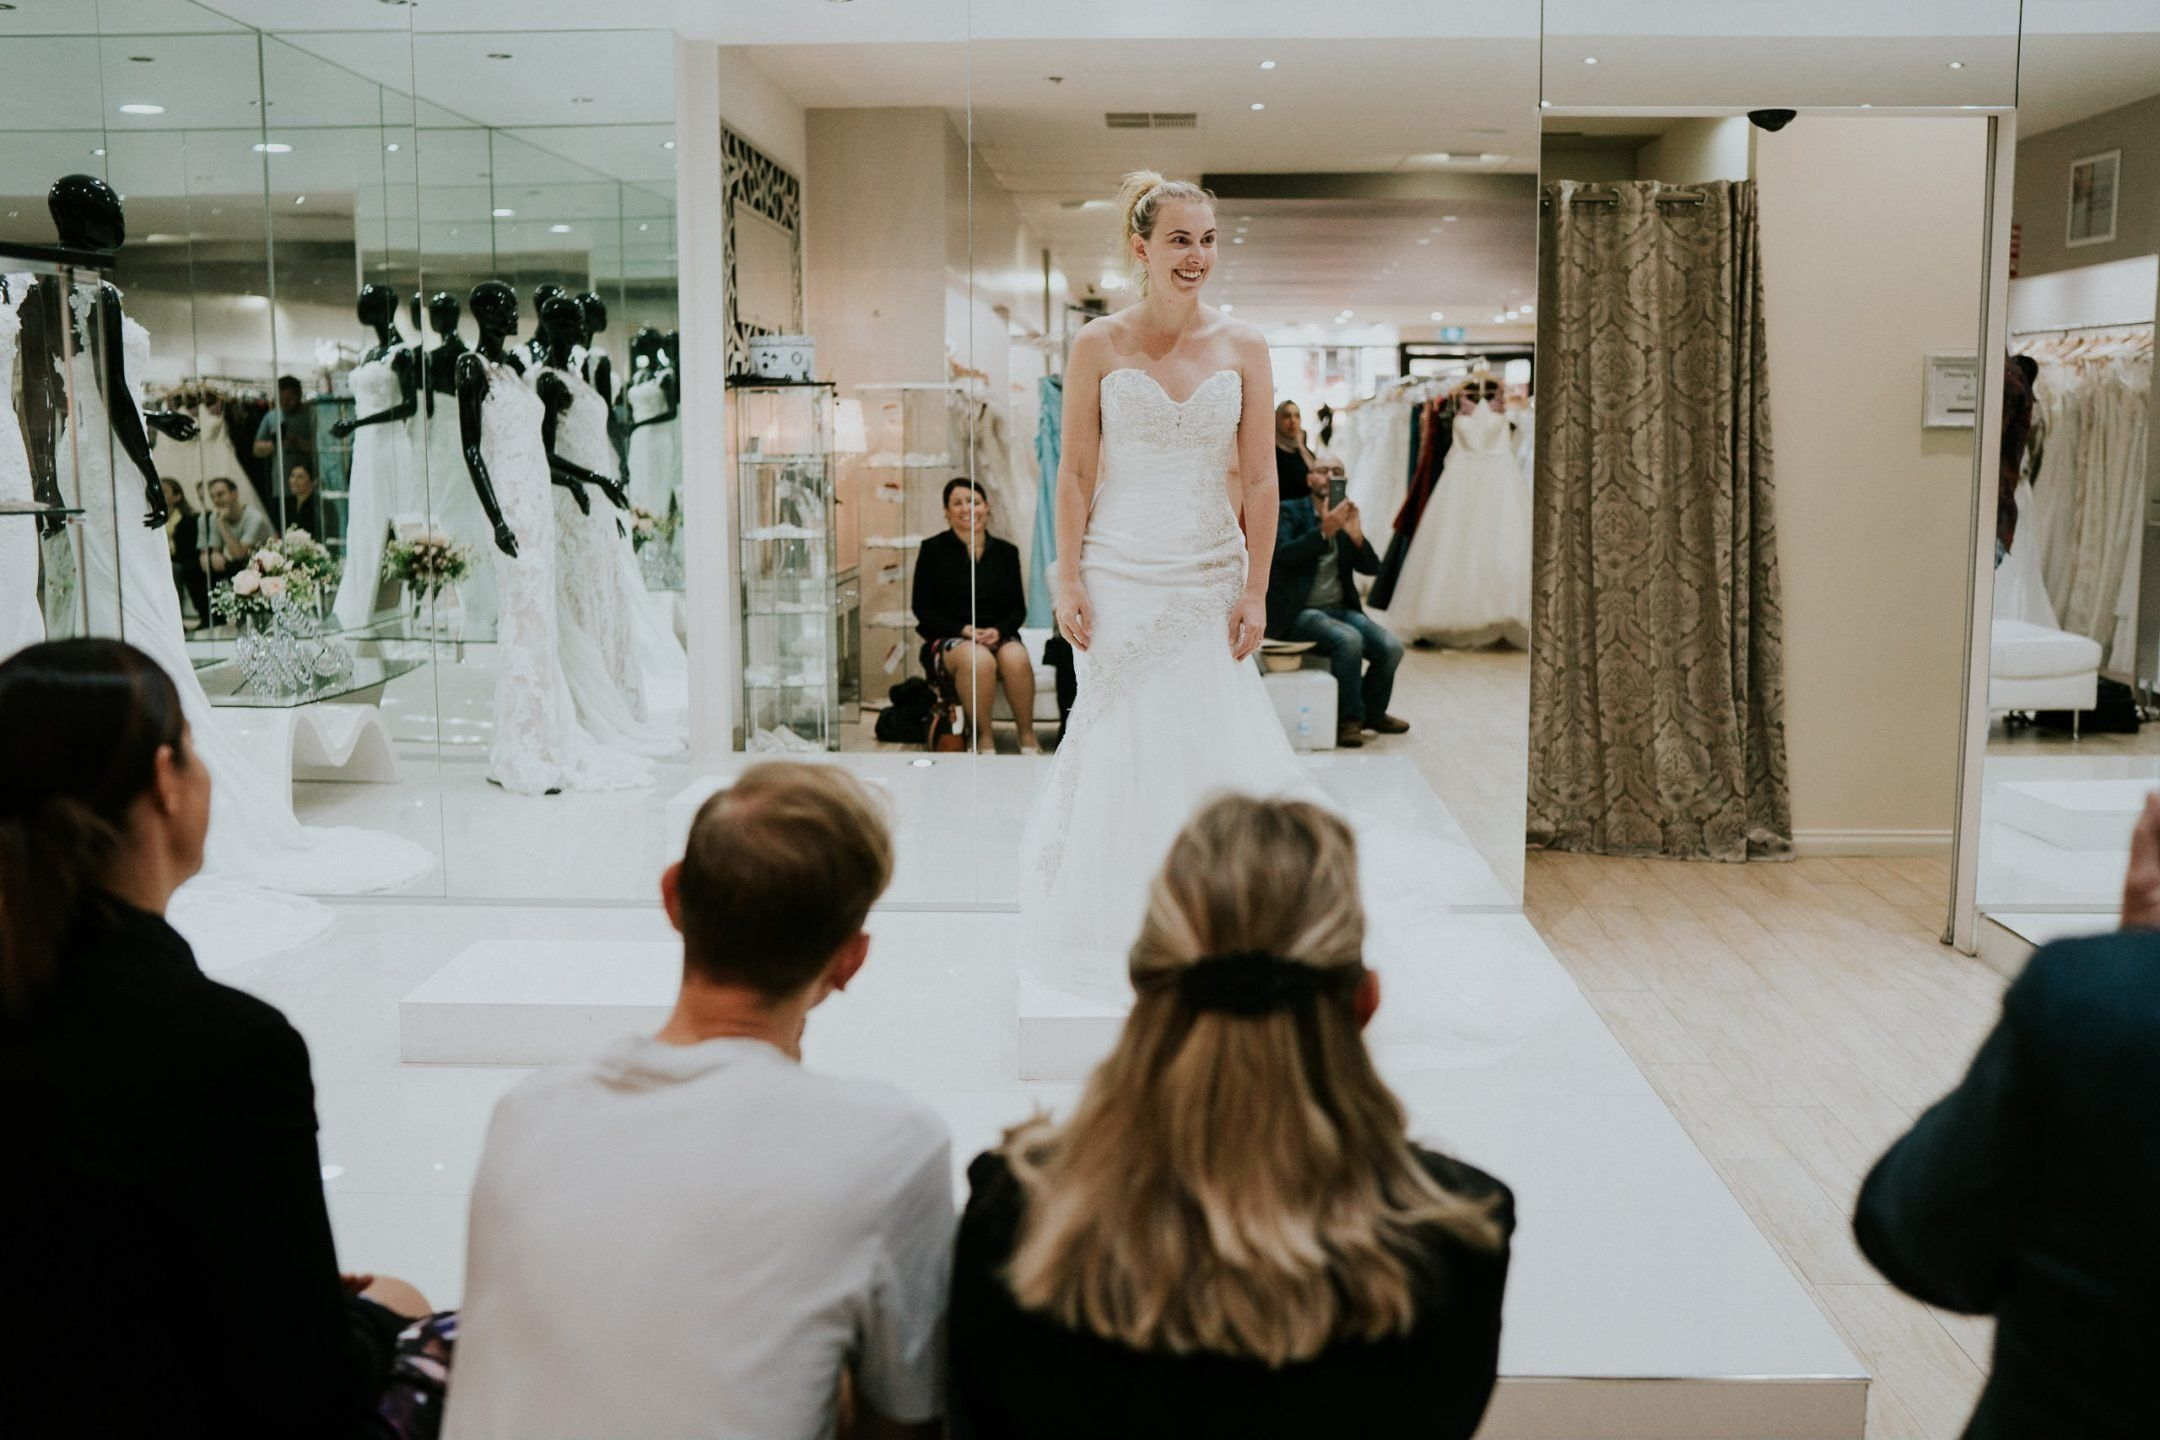 Steph Agnew smiles brightly as shewears a white strapless gown on a small platform in the bridal...